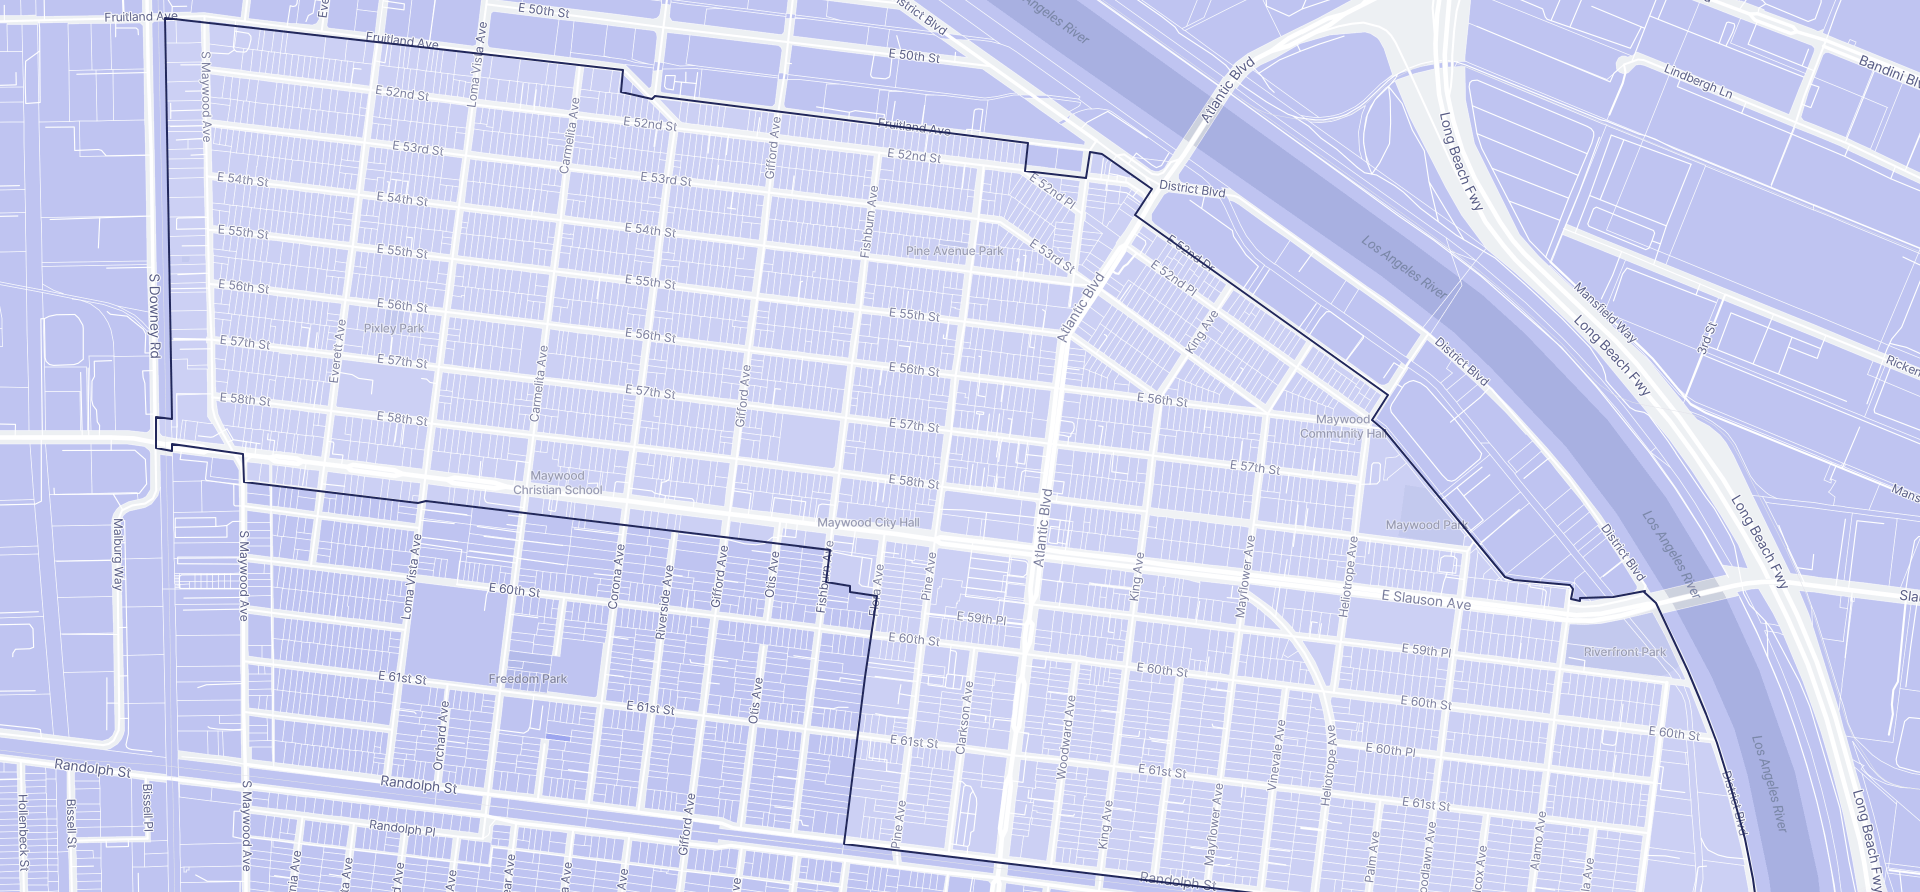 Image of Maywood boundaries on a map.